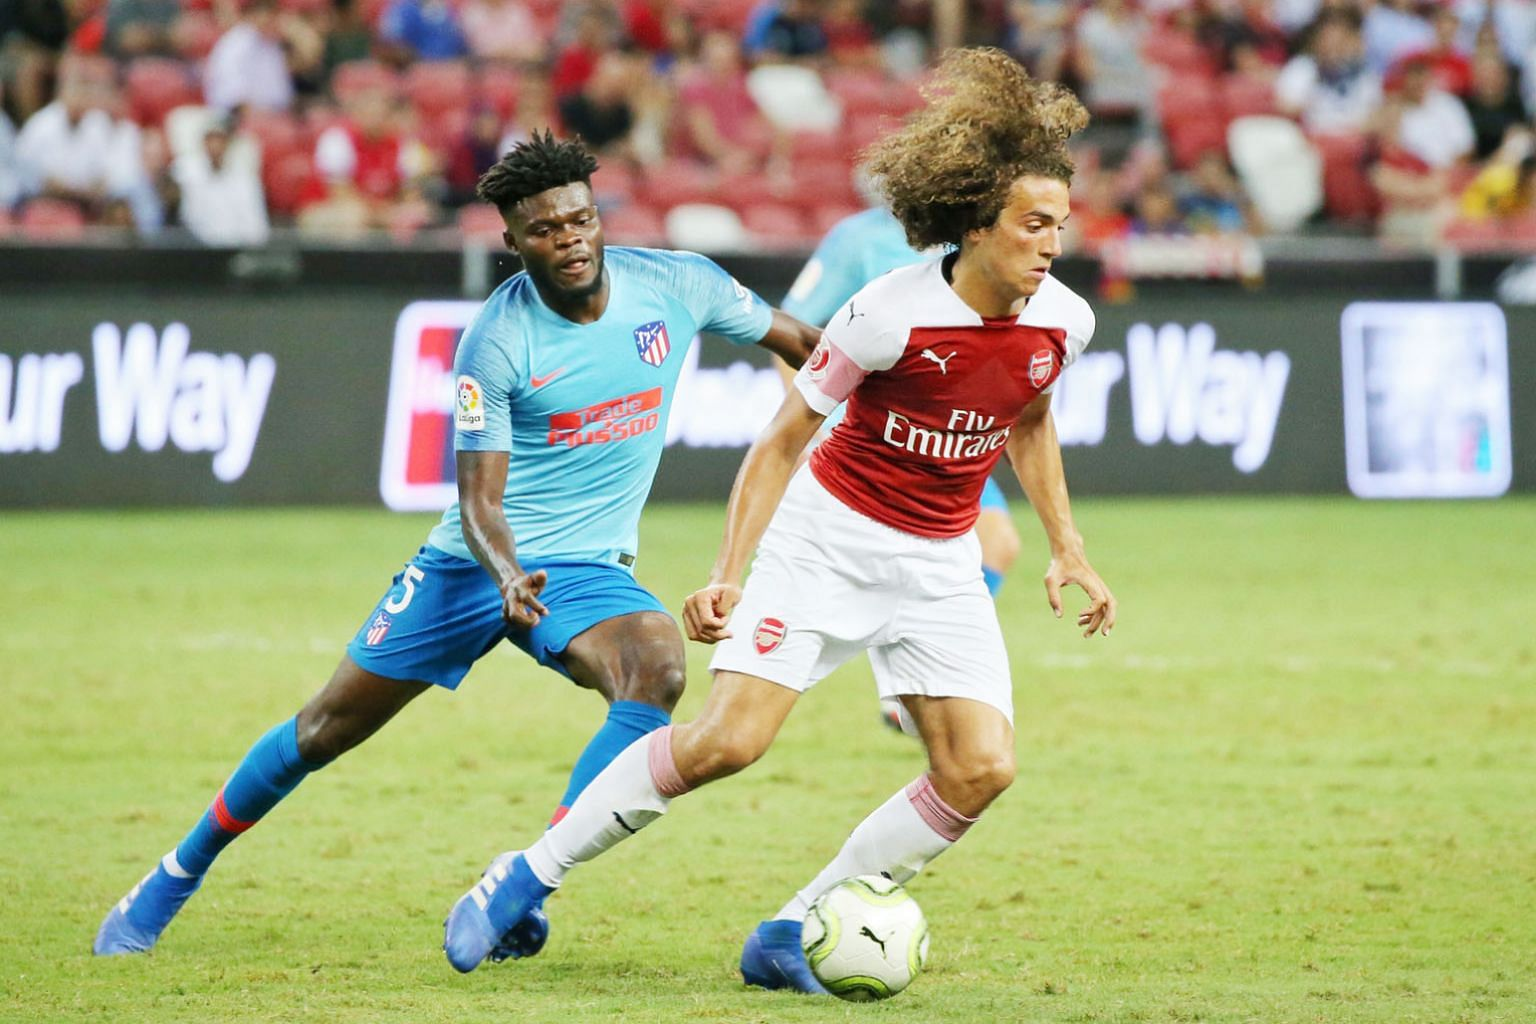 Arsenal's summer signing Matteo Guendouzi keeping the ball away from Atletico Madrid's Thomas Partey during their International Champions Cup match at the National Stadium. Left: Arsenal's Mesut Ozil walking out of the tunnel before the start of thei